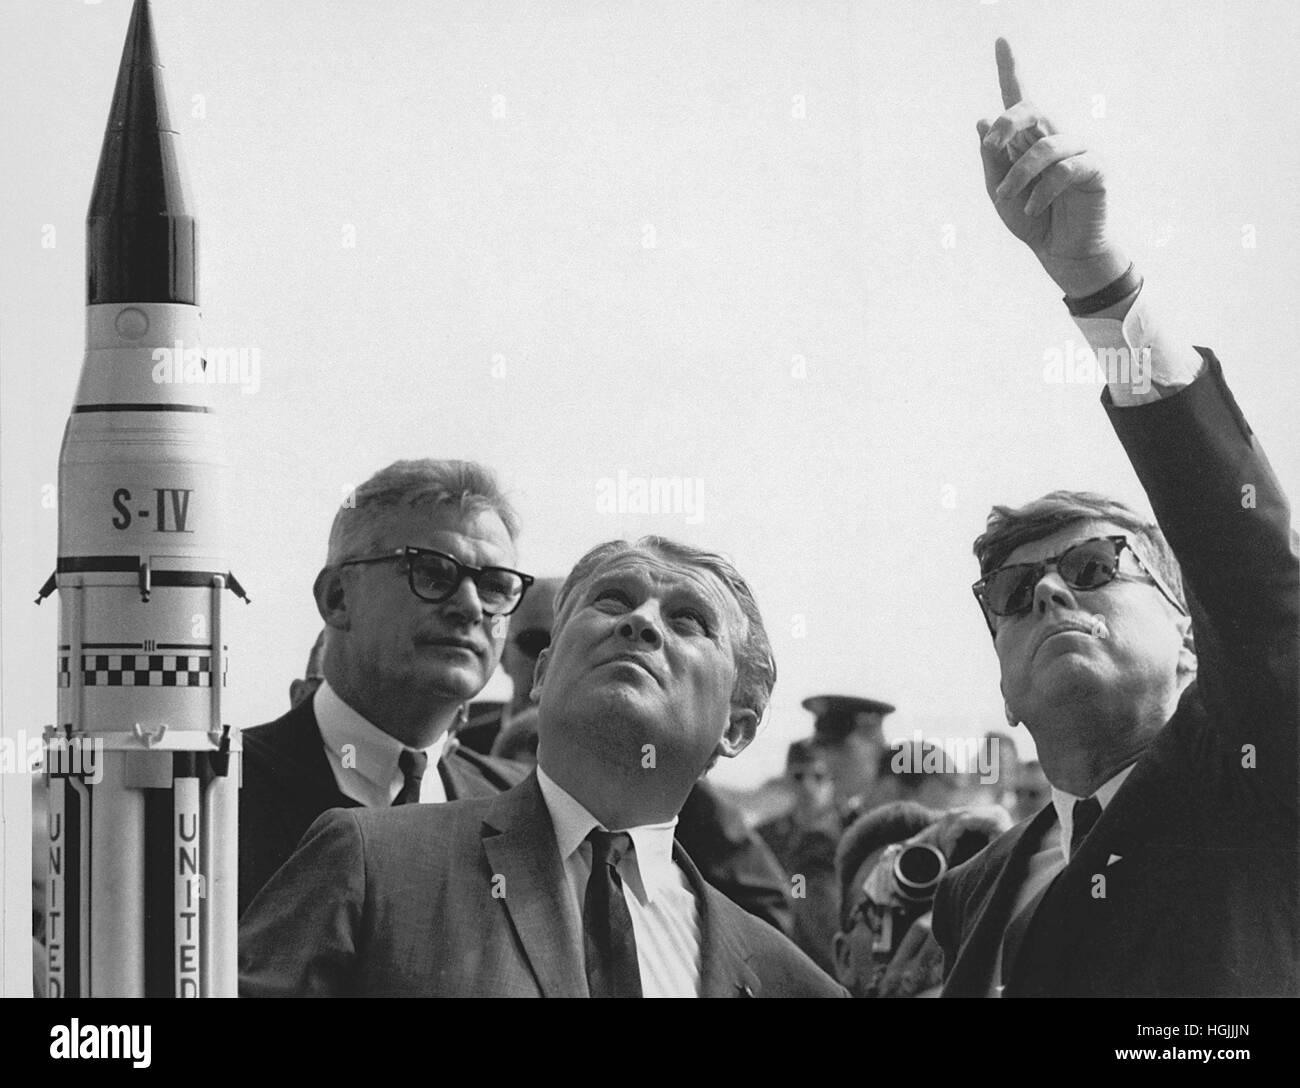 Marshall Space Flight Center (MSFC) Director, Doctor Wernher von Braun explains the Saturn Launch System to United States President John F. Kennedy at Cape Canaveral, Florida on November 16, 1963. National Aeronautics and Space Administration (NASA) Deputy Administrator Robert Seamans is to the left of von Braun.Credit: NASA via CNP - NO WIRE SERVICE - Photo: Nasa/Consolidated News Photos/NASA via CNP Stock Photo